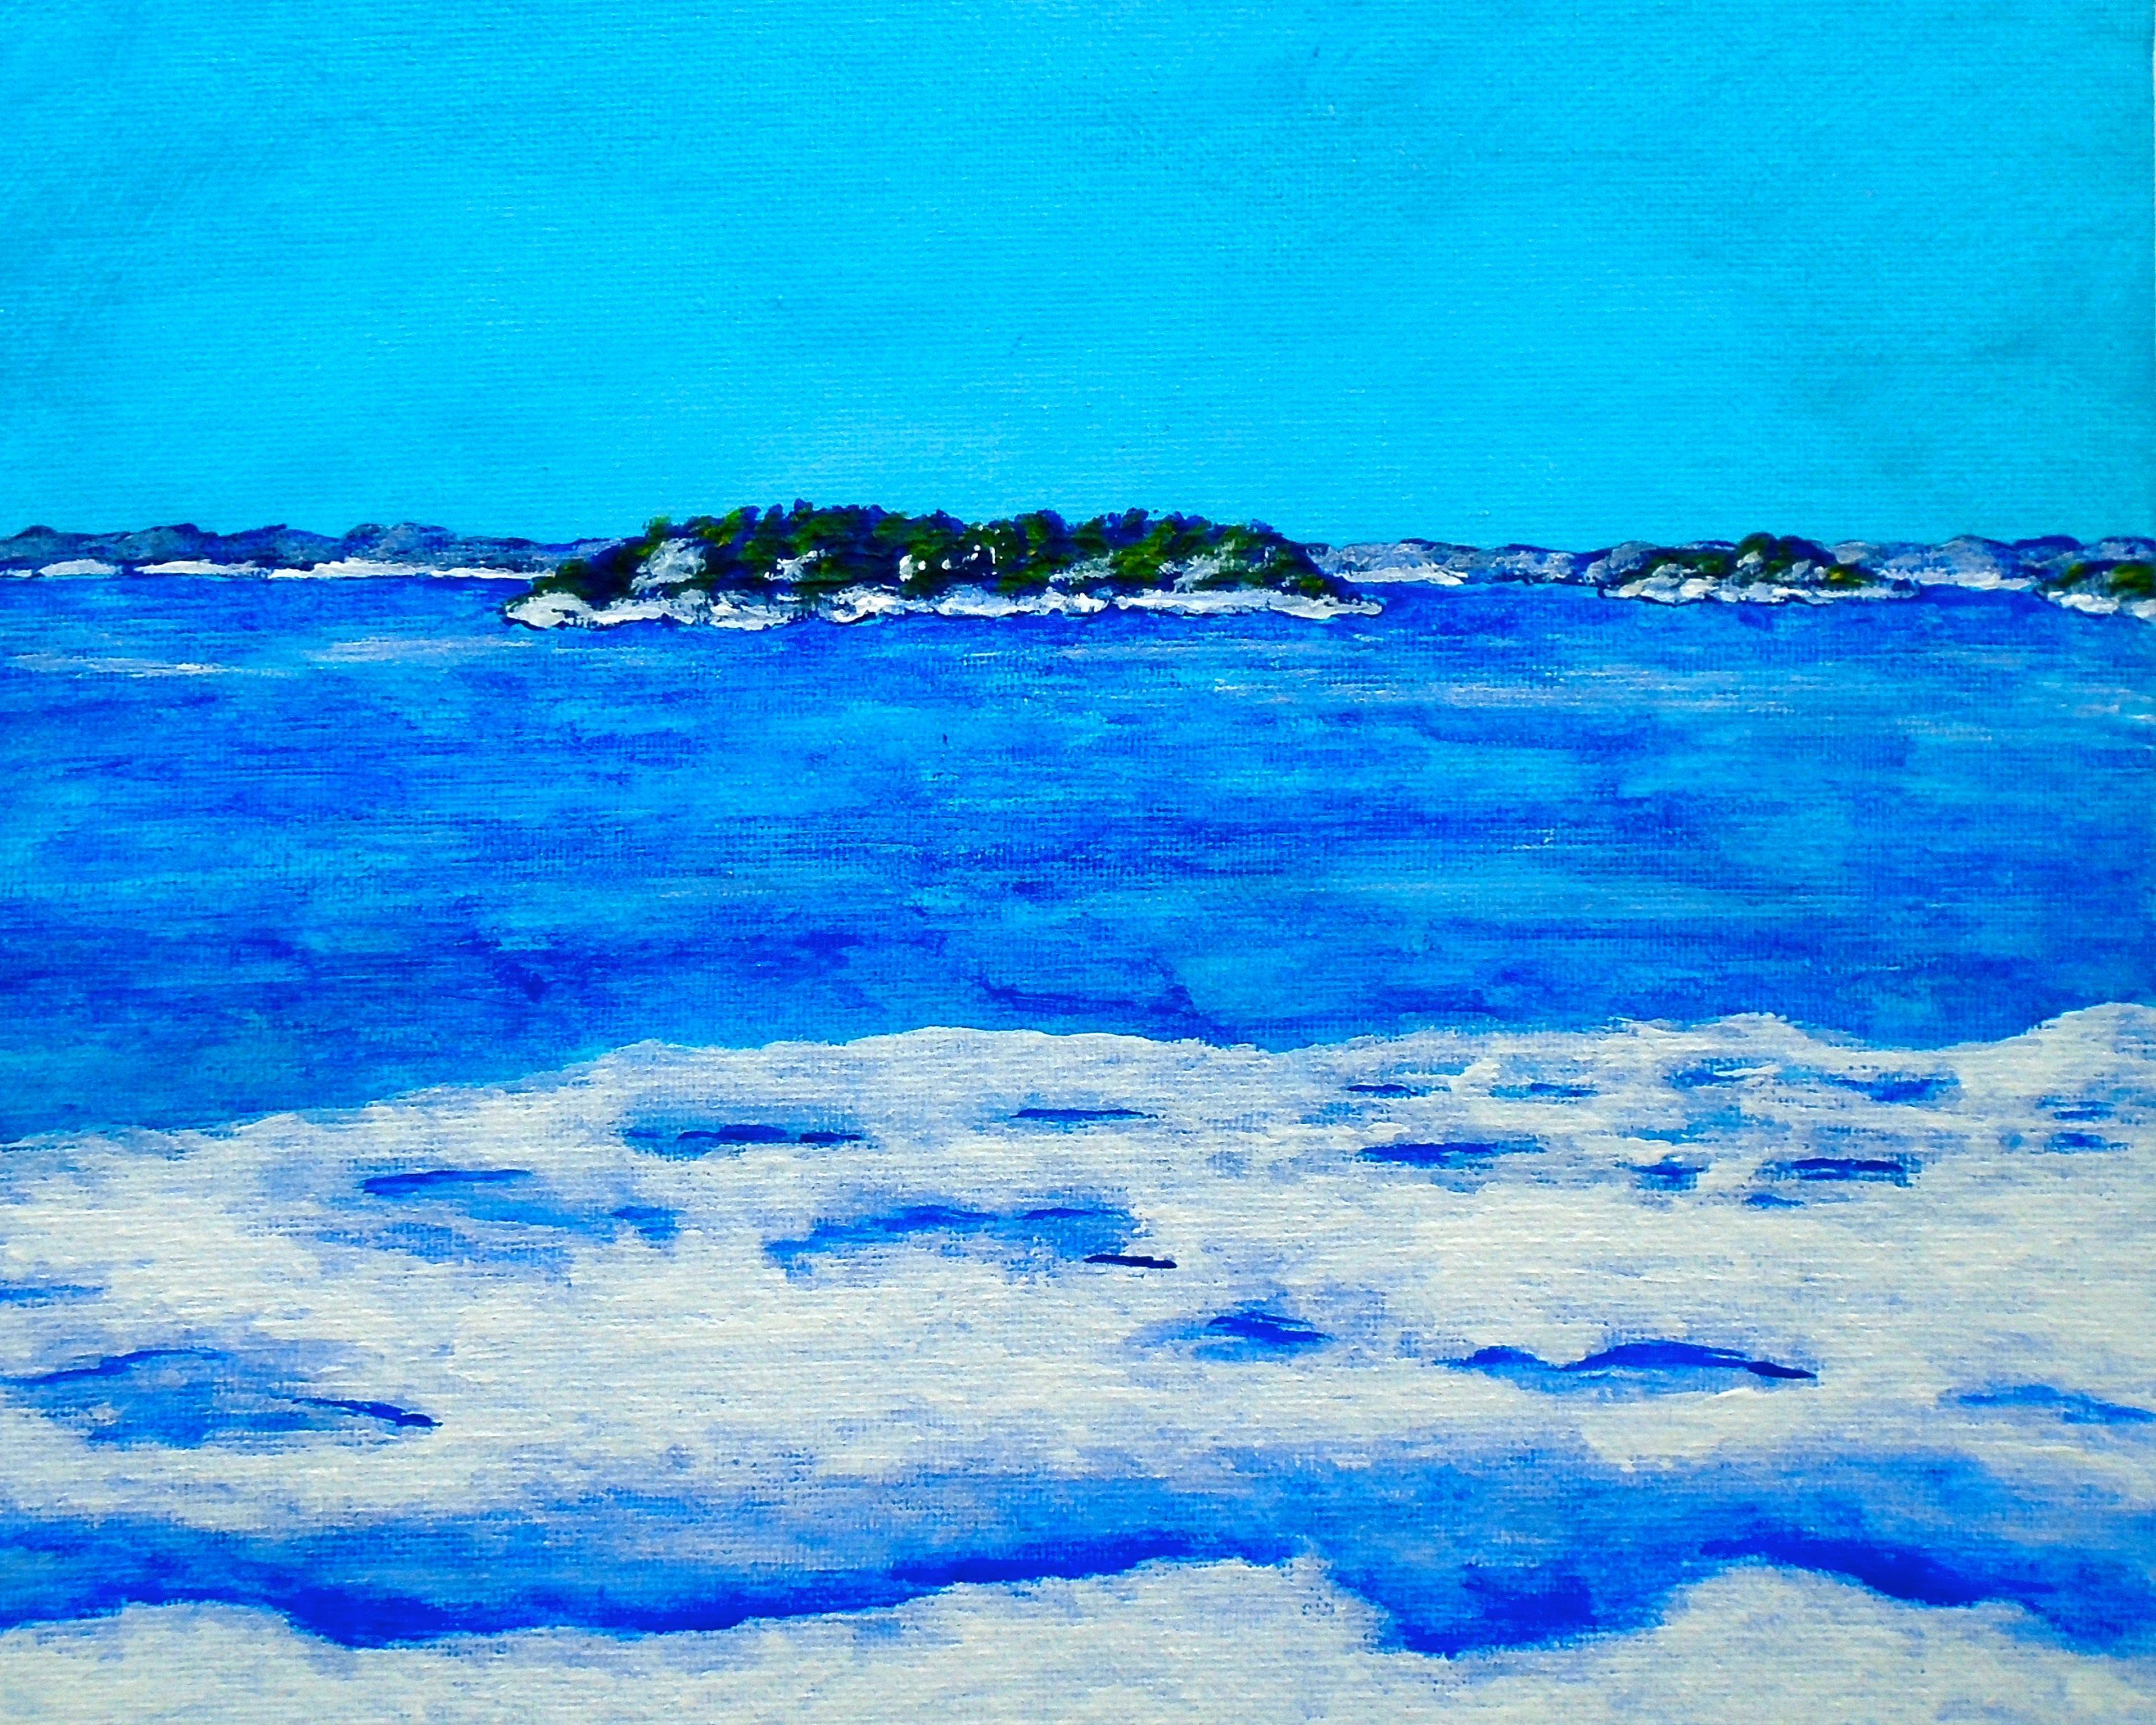 Icy Shore of the St. Lawrence River (ORIGINAL ACRYLIC